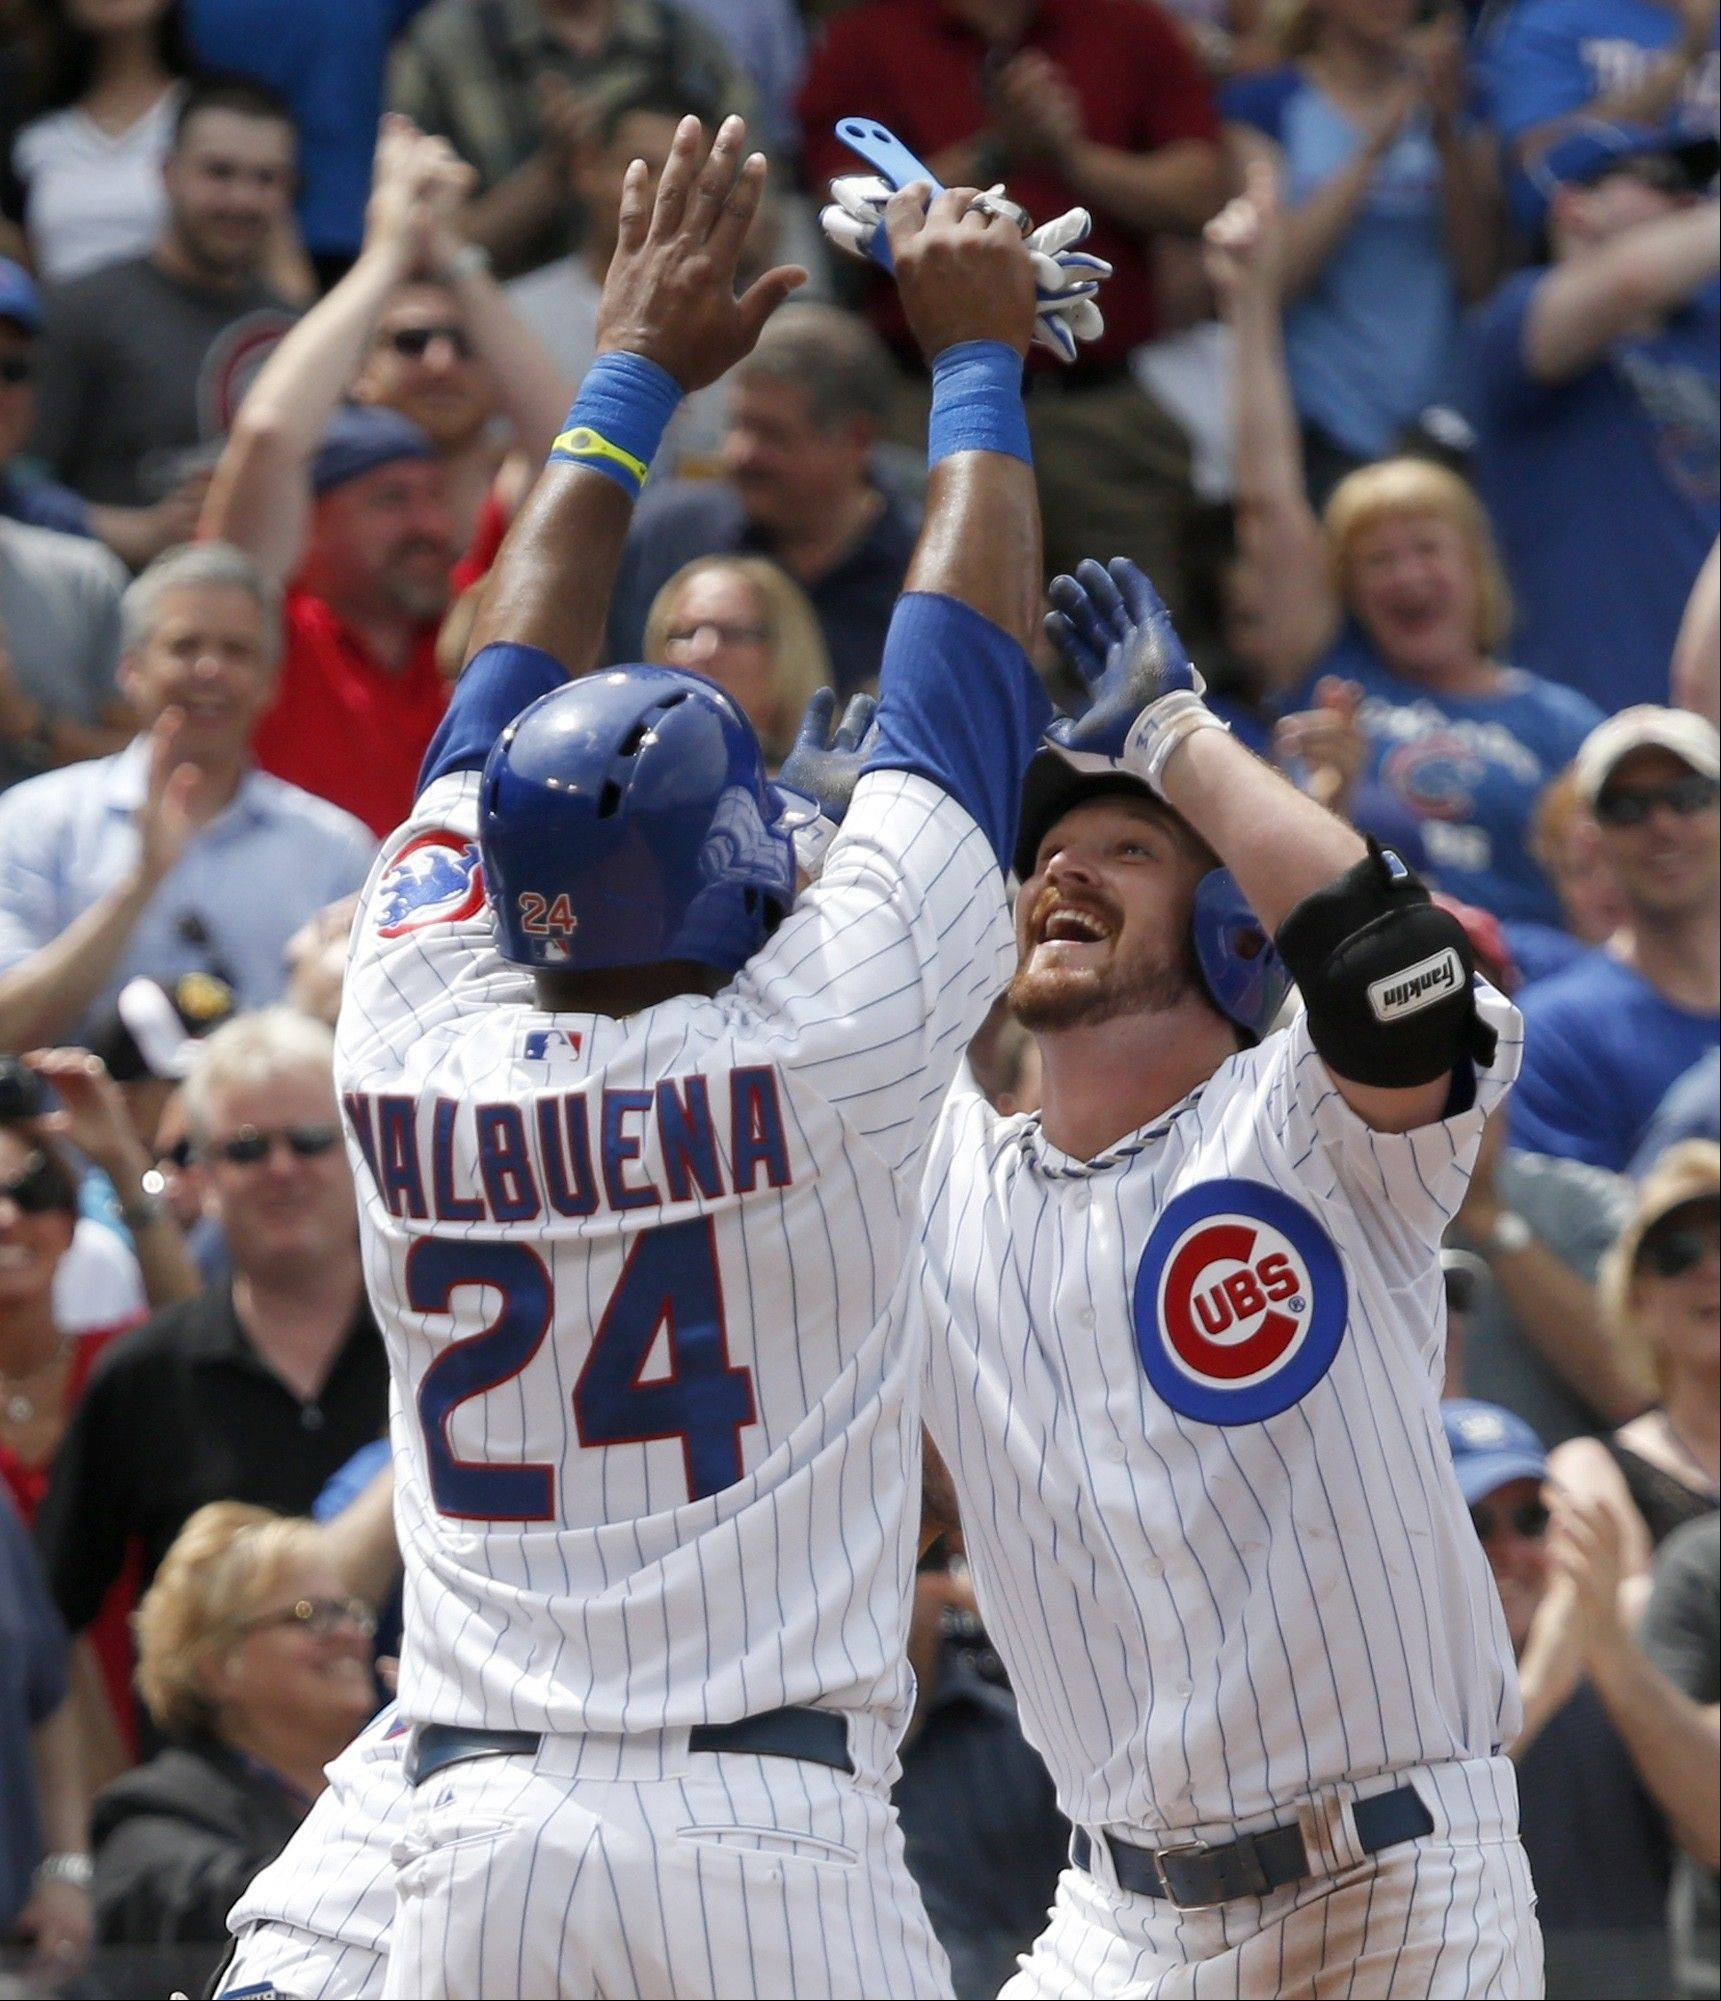 Cubs pitcher Travis Wood, right, celebrates Thursday at home plate with Luis Valbuena after hitting a grand slam off White Sox starting pitcher Jake Peavy during the fourth inning at Wrigley Field. The Cubs� Darwin Barney and Welington Castillo also scored on the homer.